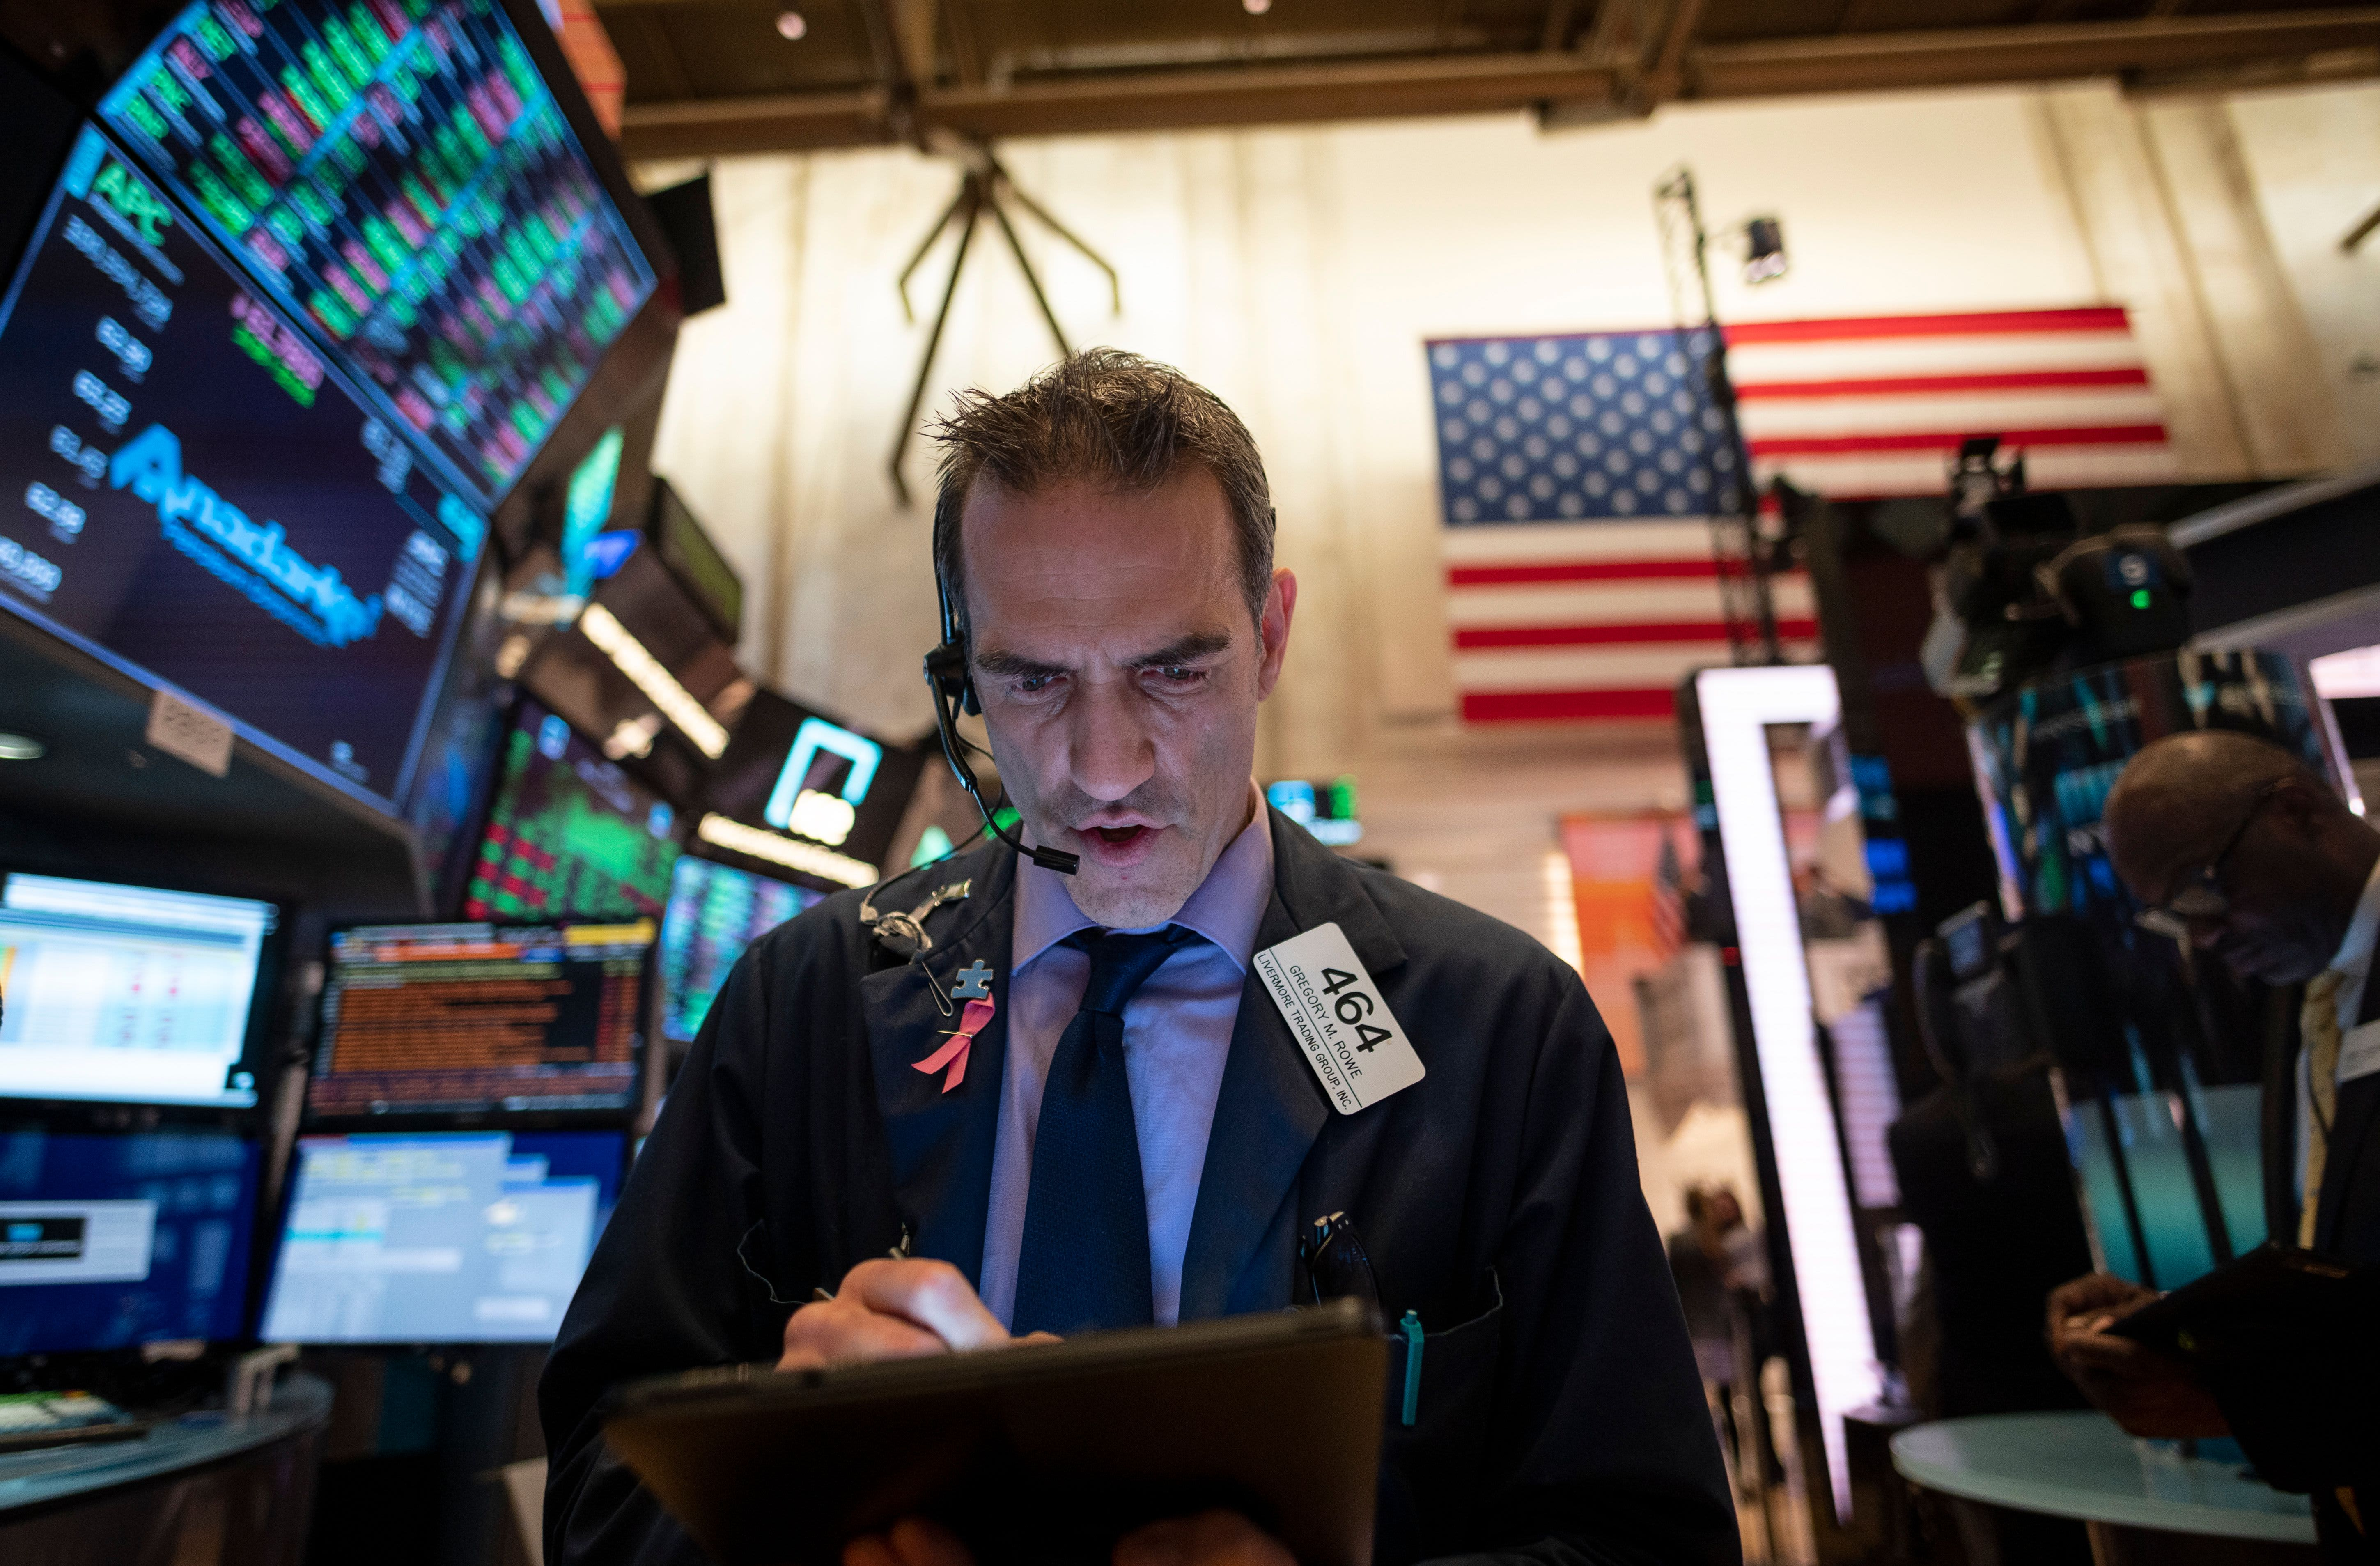 S&P 500 reaches all-time high, but gains limited ahead of big earnings